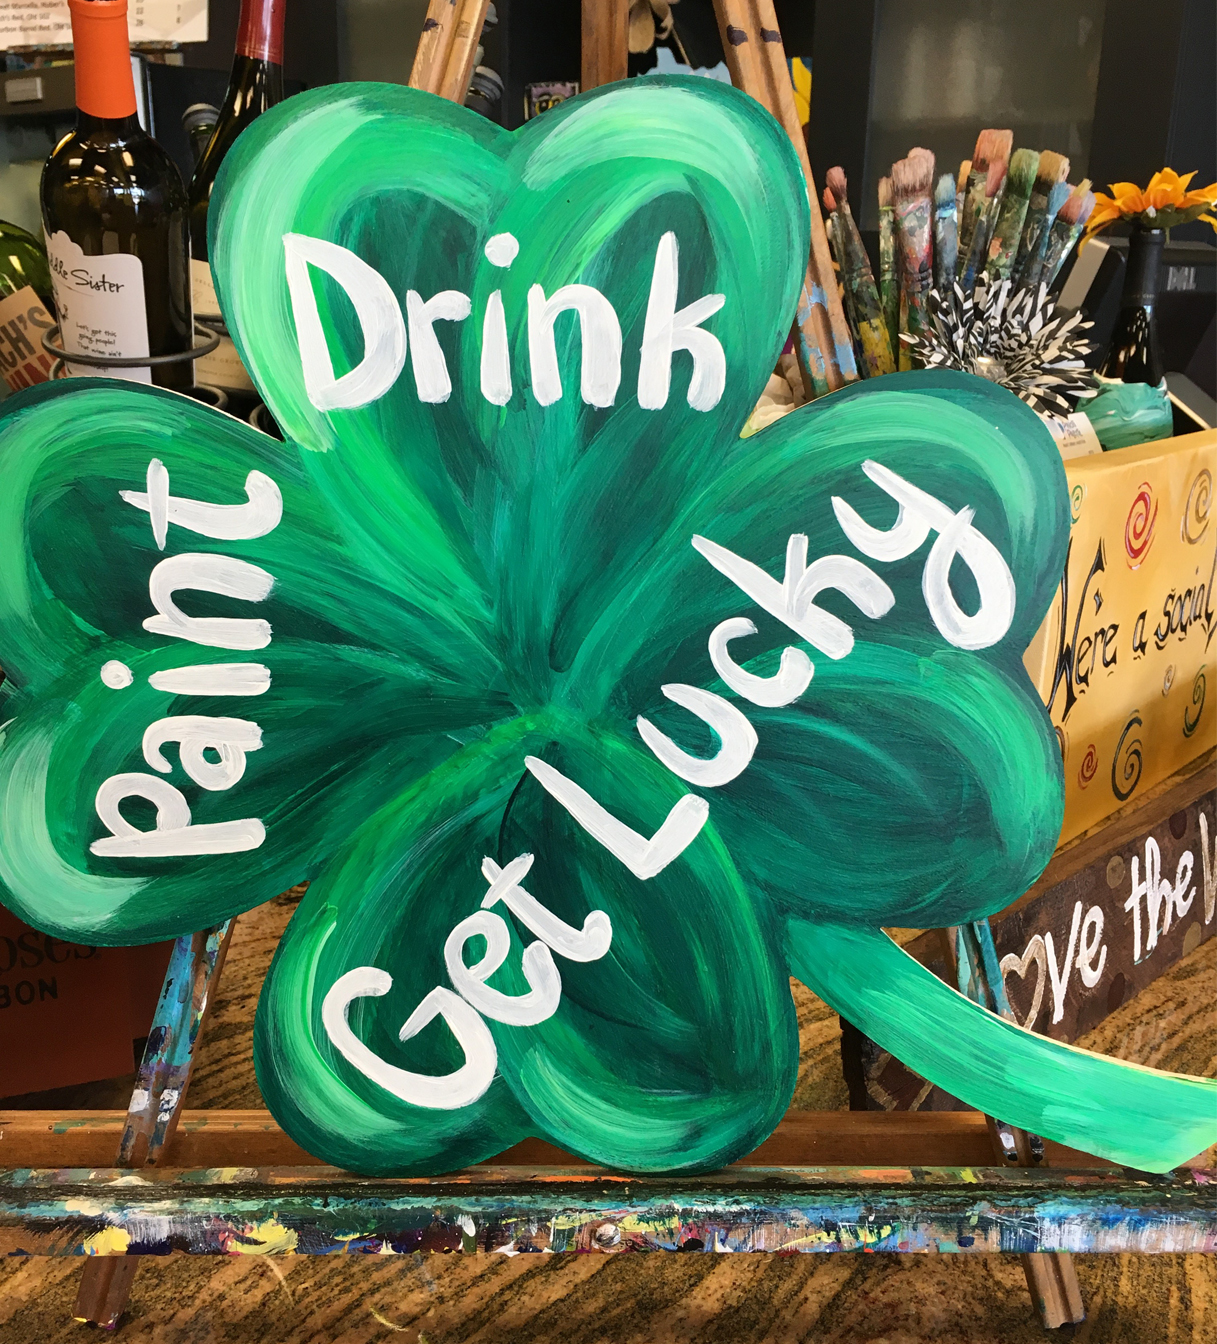 St. Patrick's Day at Pinot's Palette